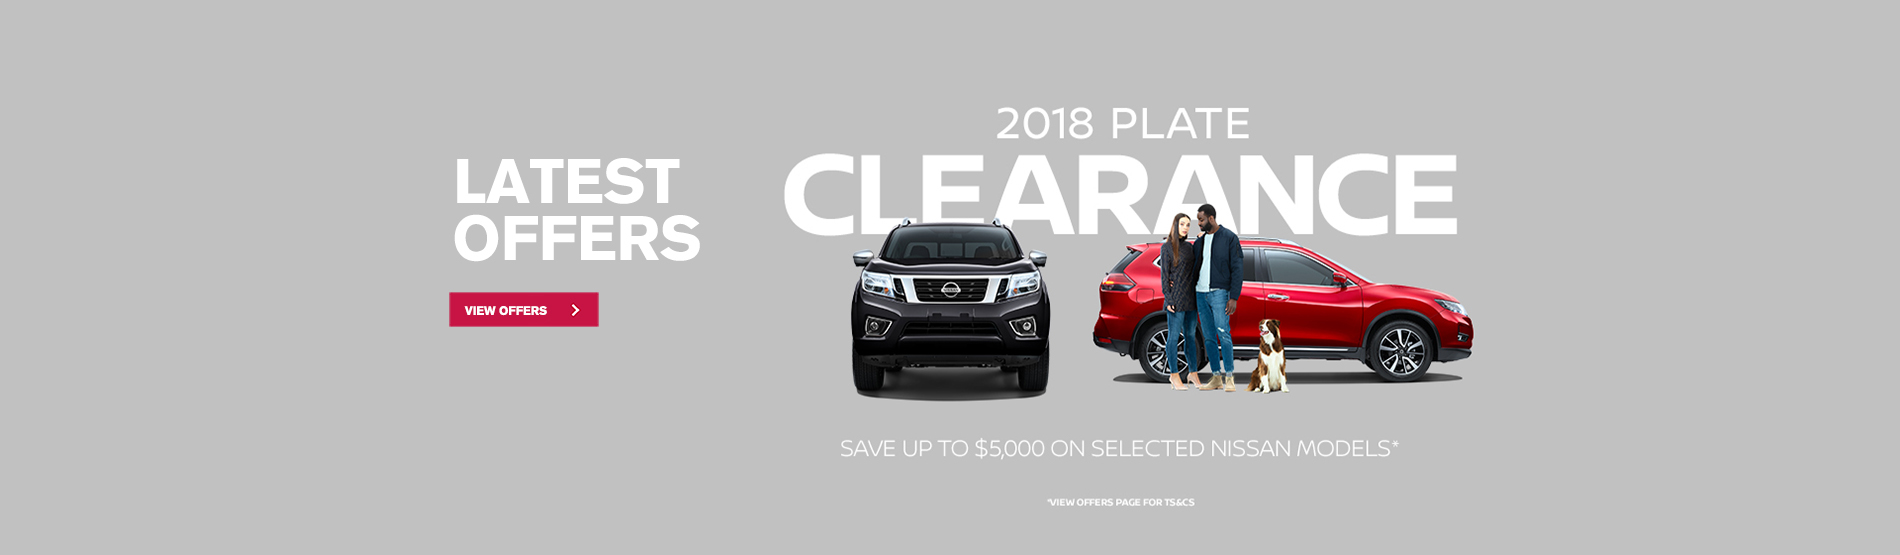 Nissan 2018 Plate Clearance